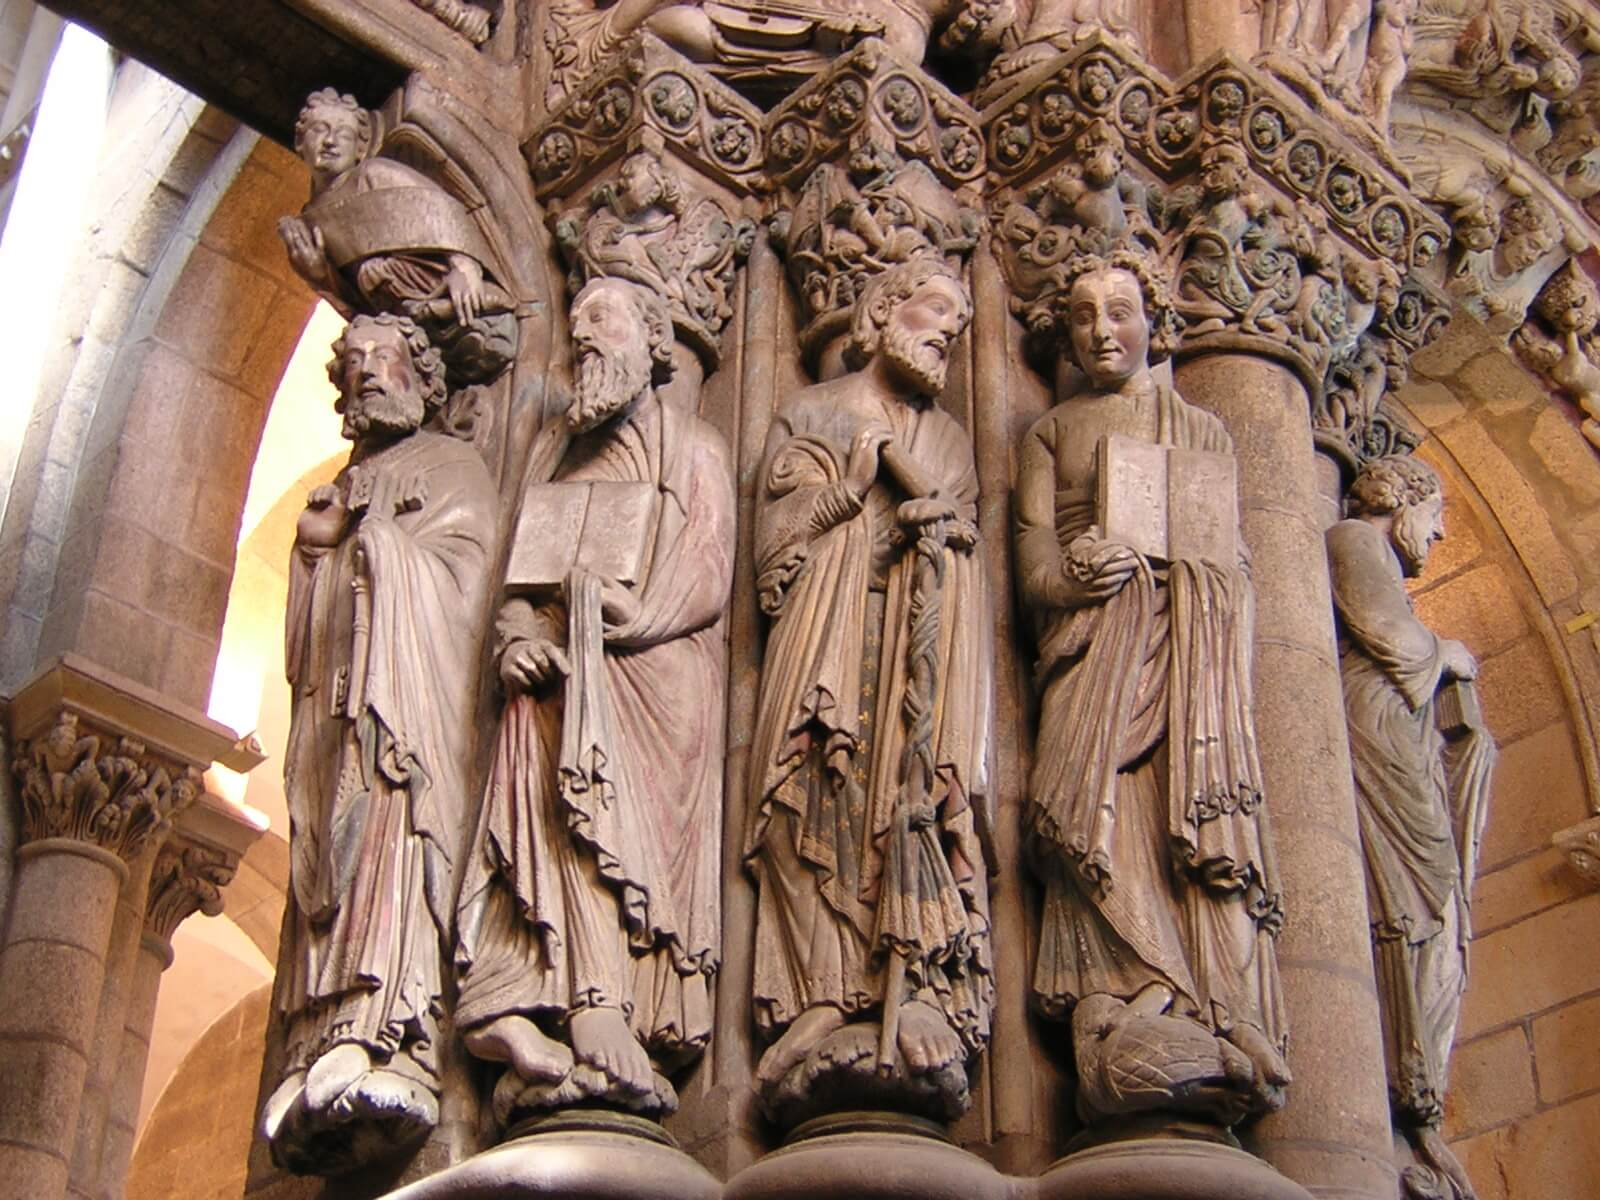 Inside the Cathedral of Santiago de Compostela, the Apostles